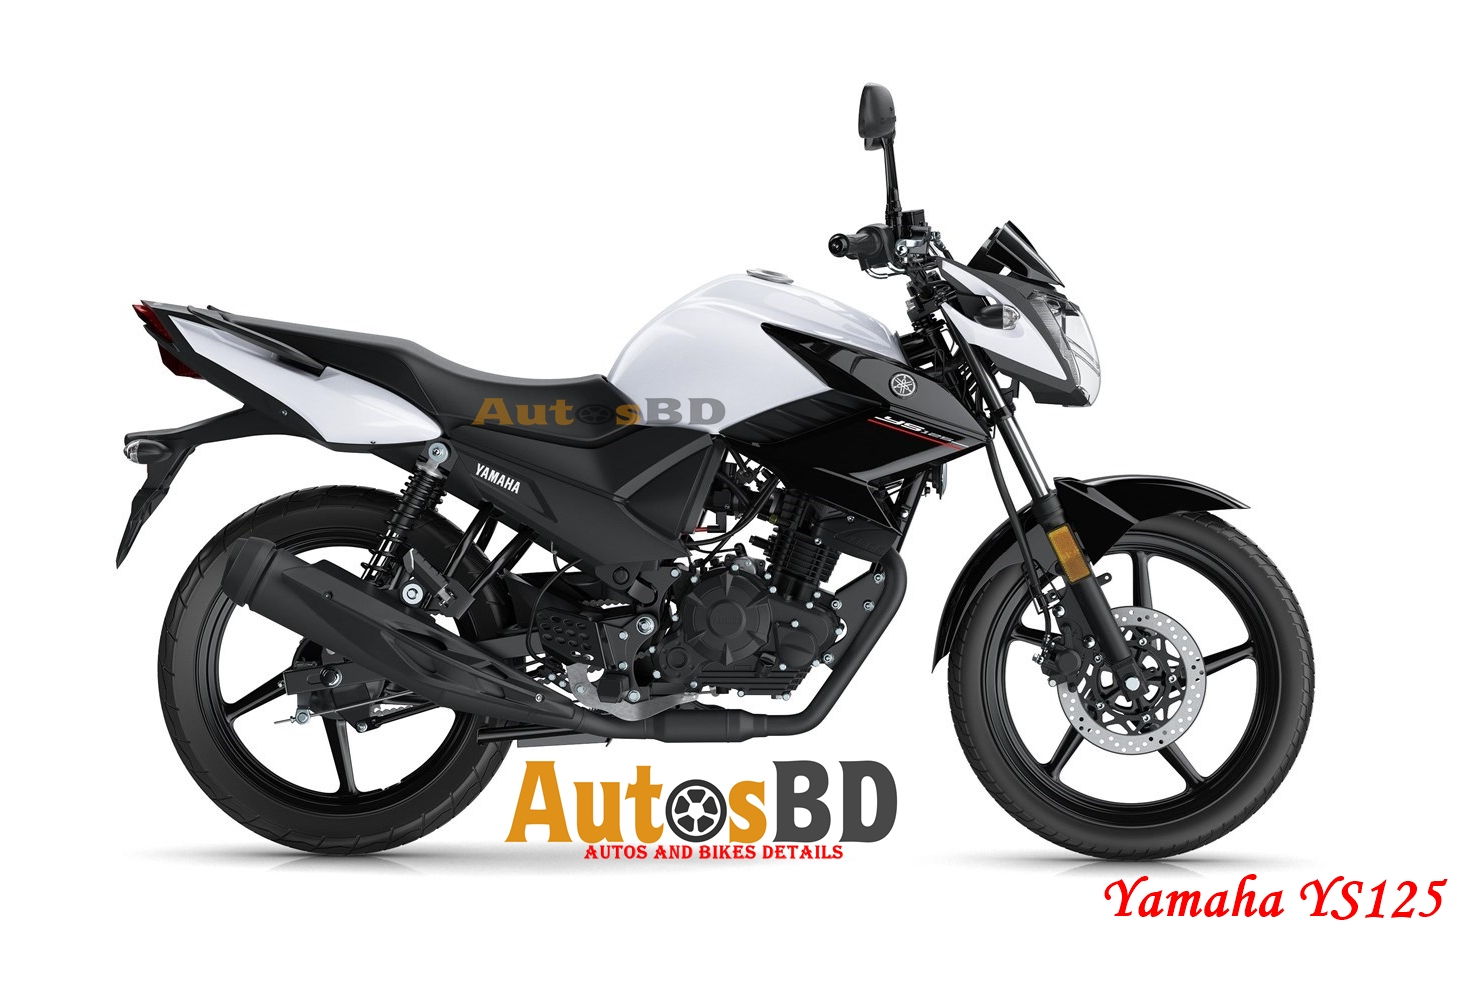 Yamaha YS125 Motorcycle Price in India